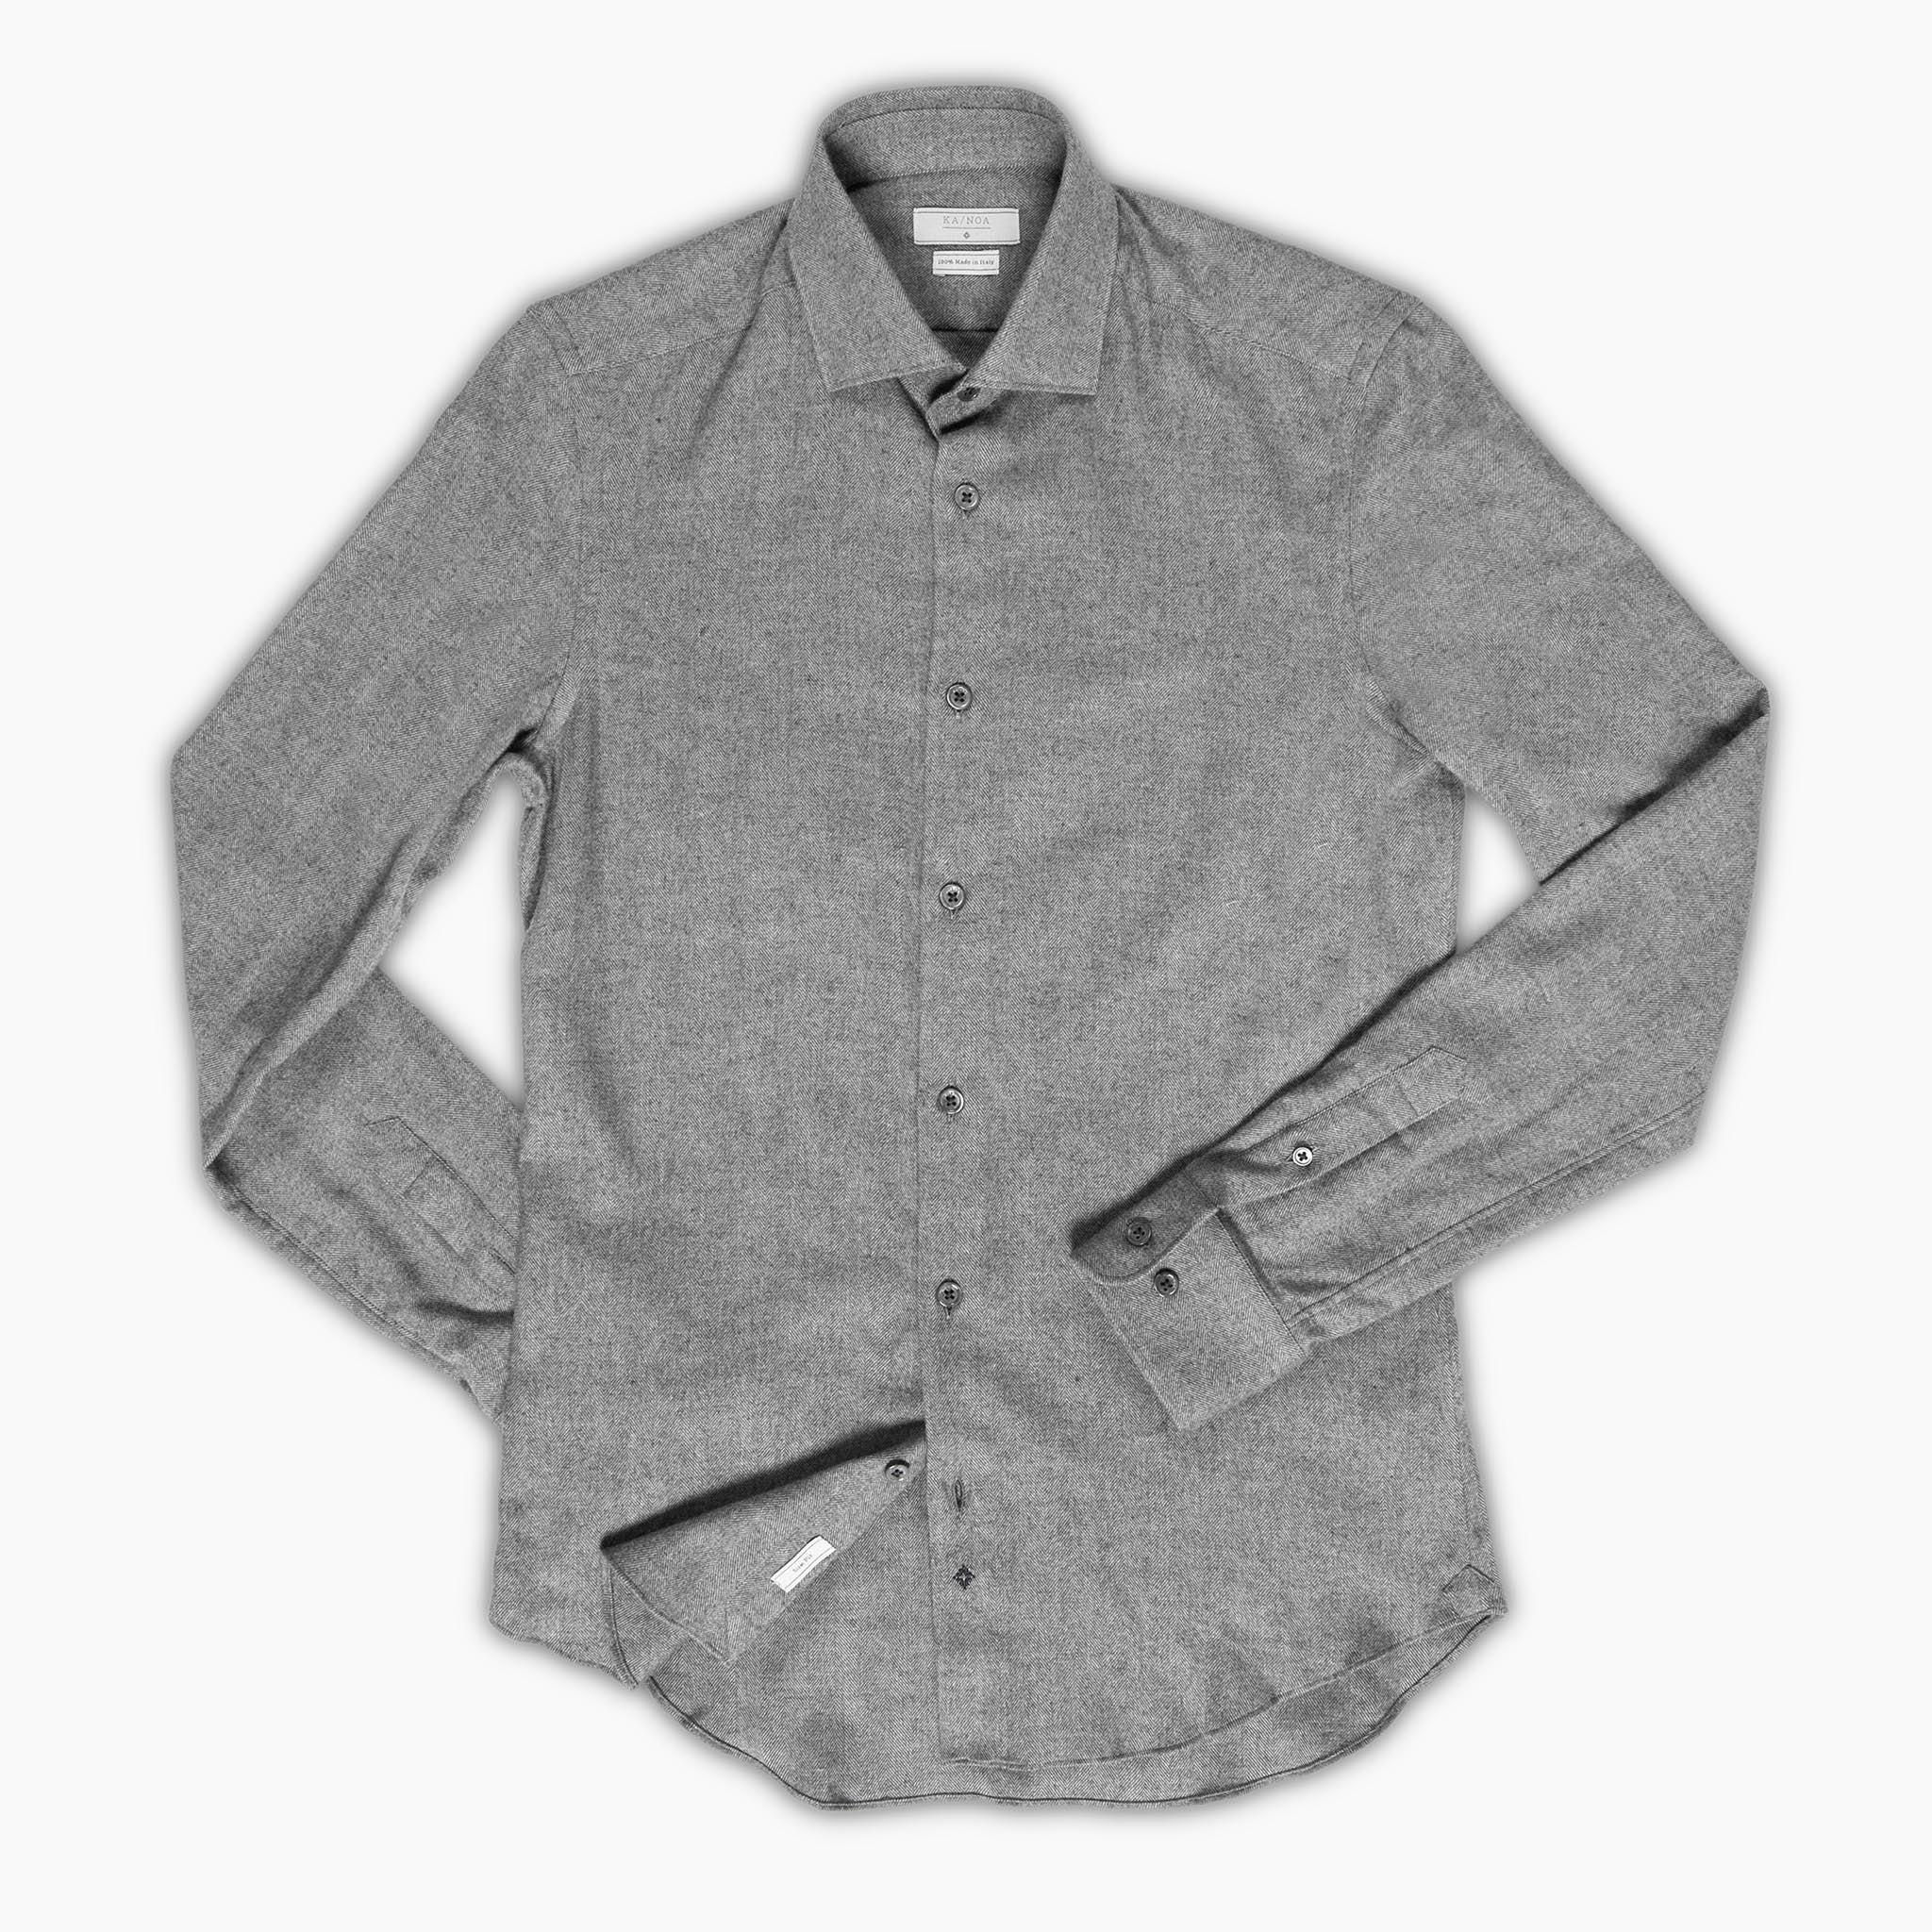 Fall/Winter - Shirts